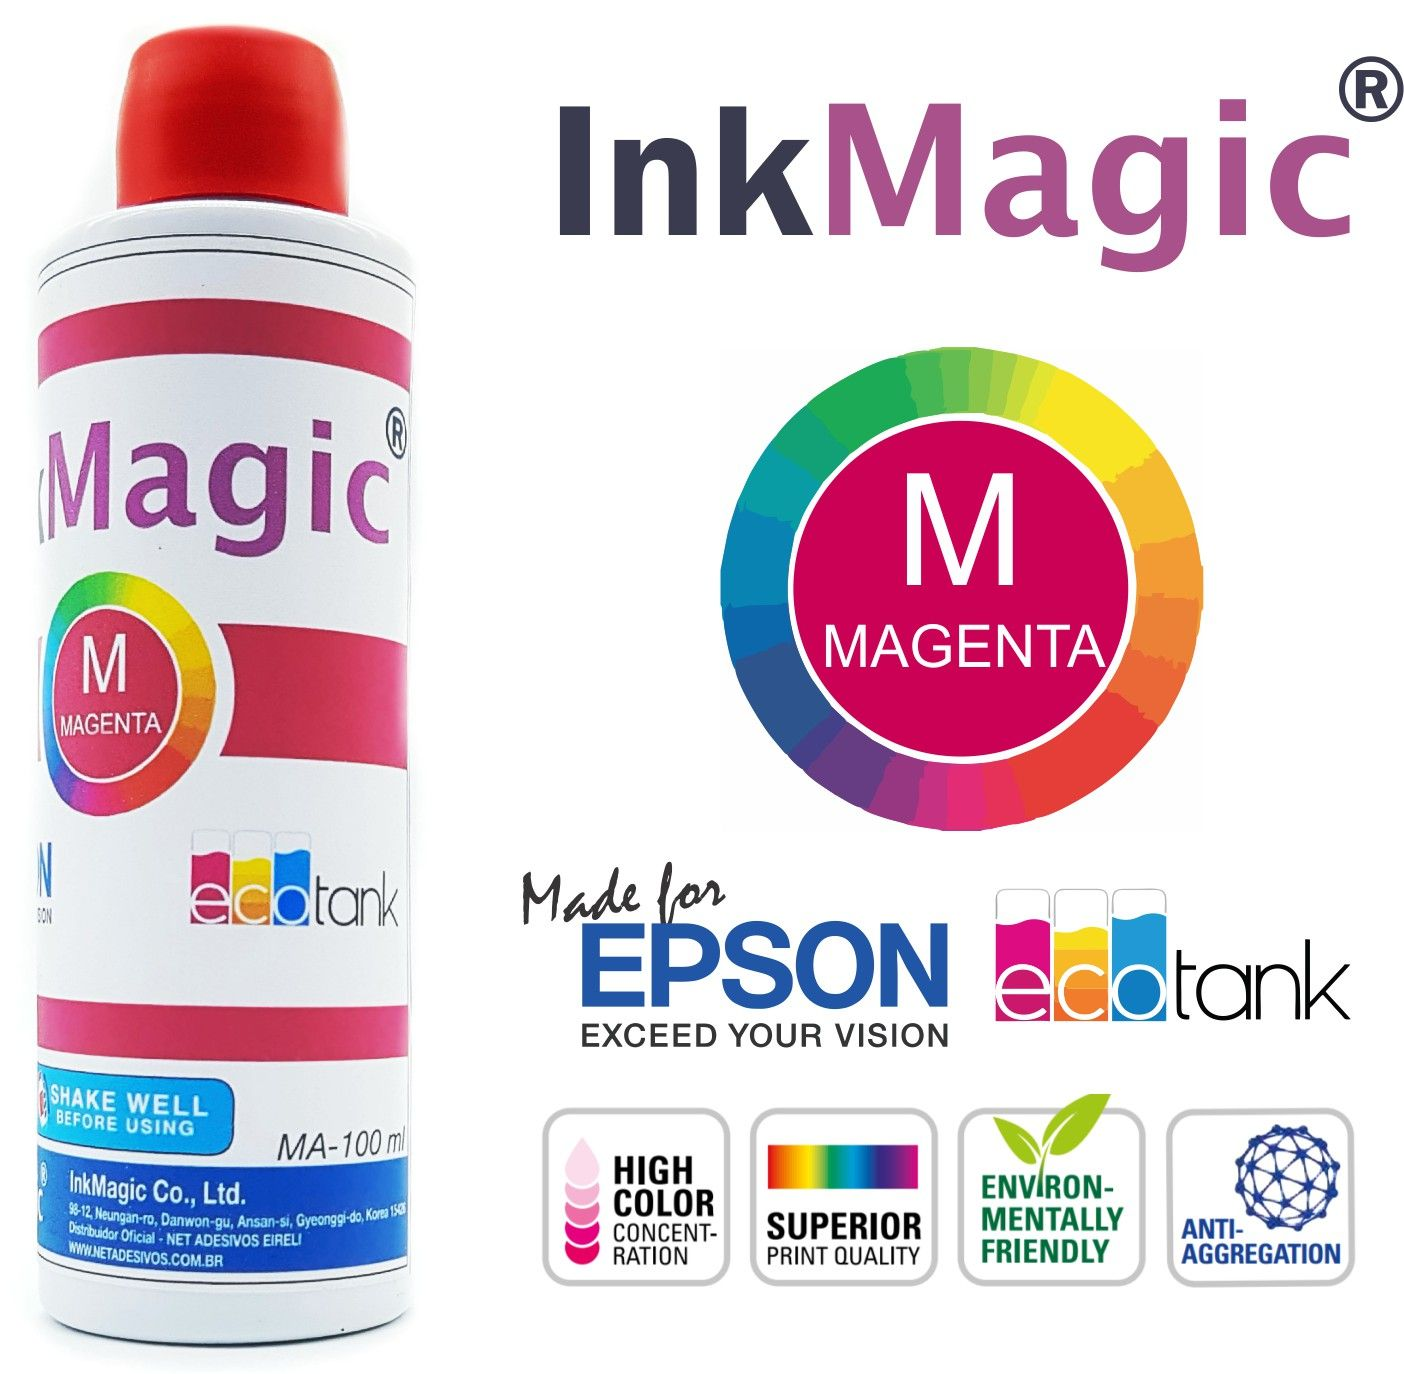 Tinta Sublimática InkMagic 400ml + 100 Papel Sublimático A3 + Icc